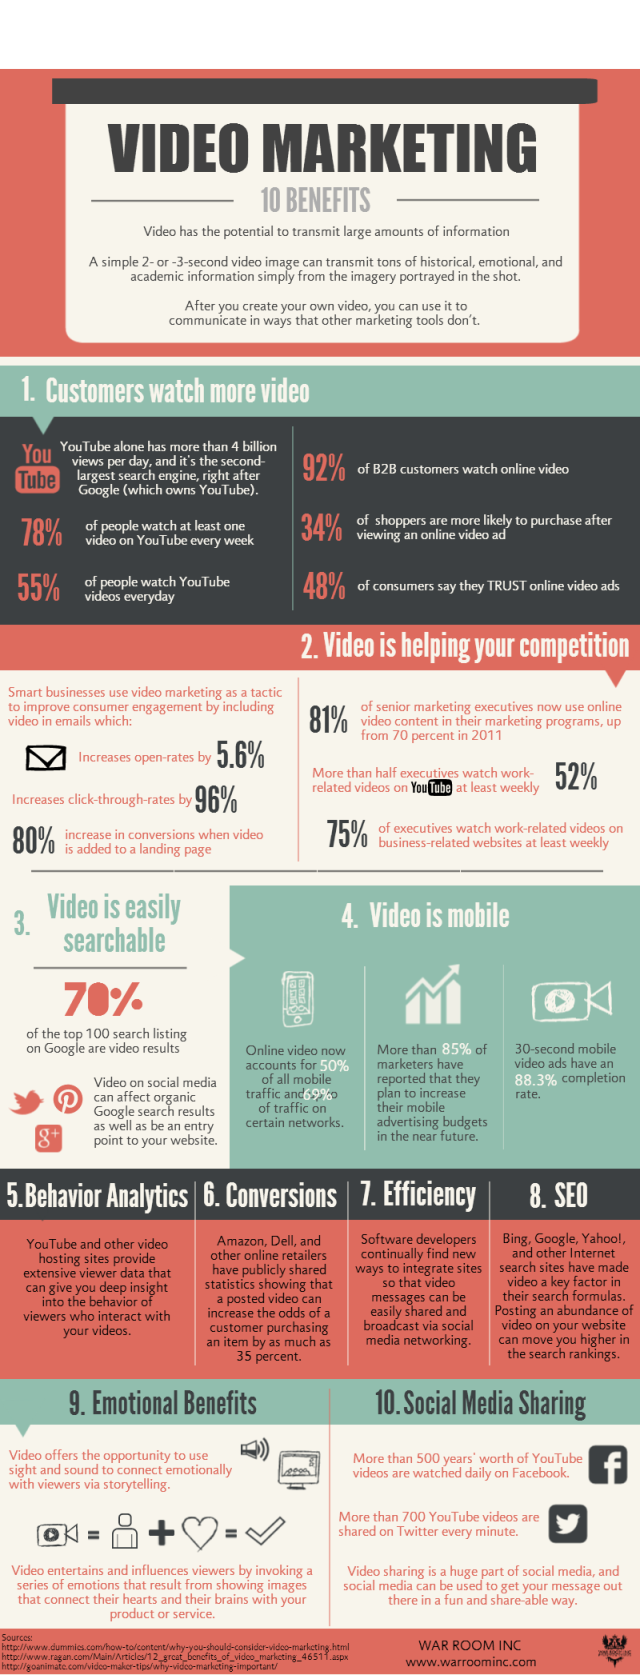 benefits-video-marketing-640x1675